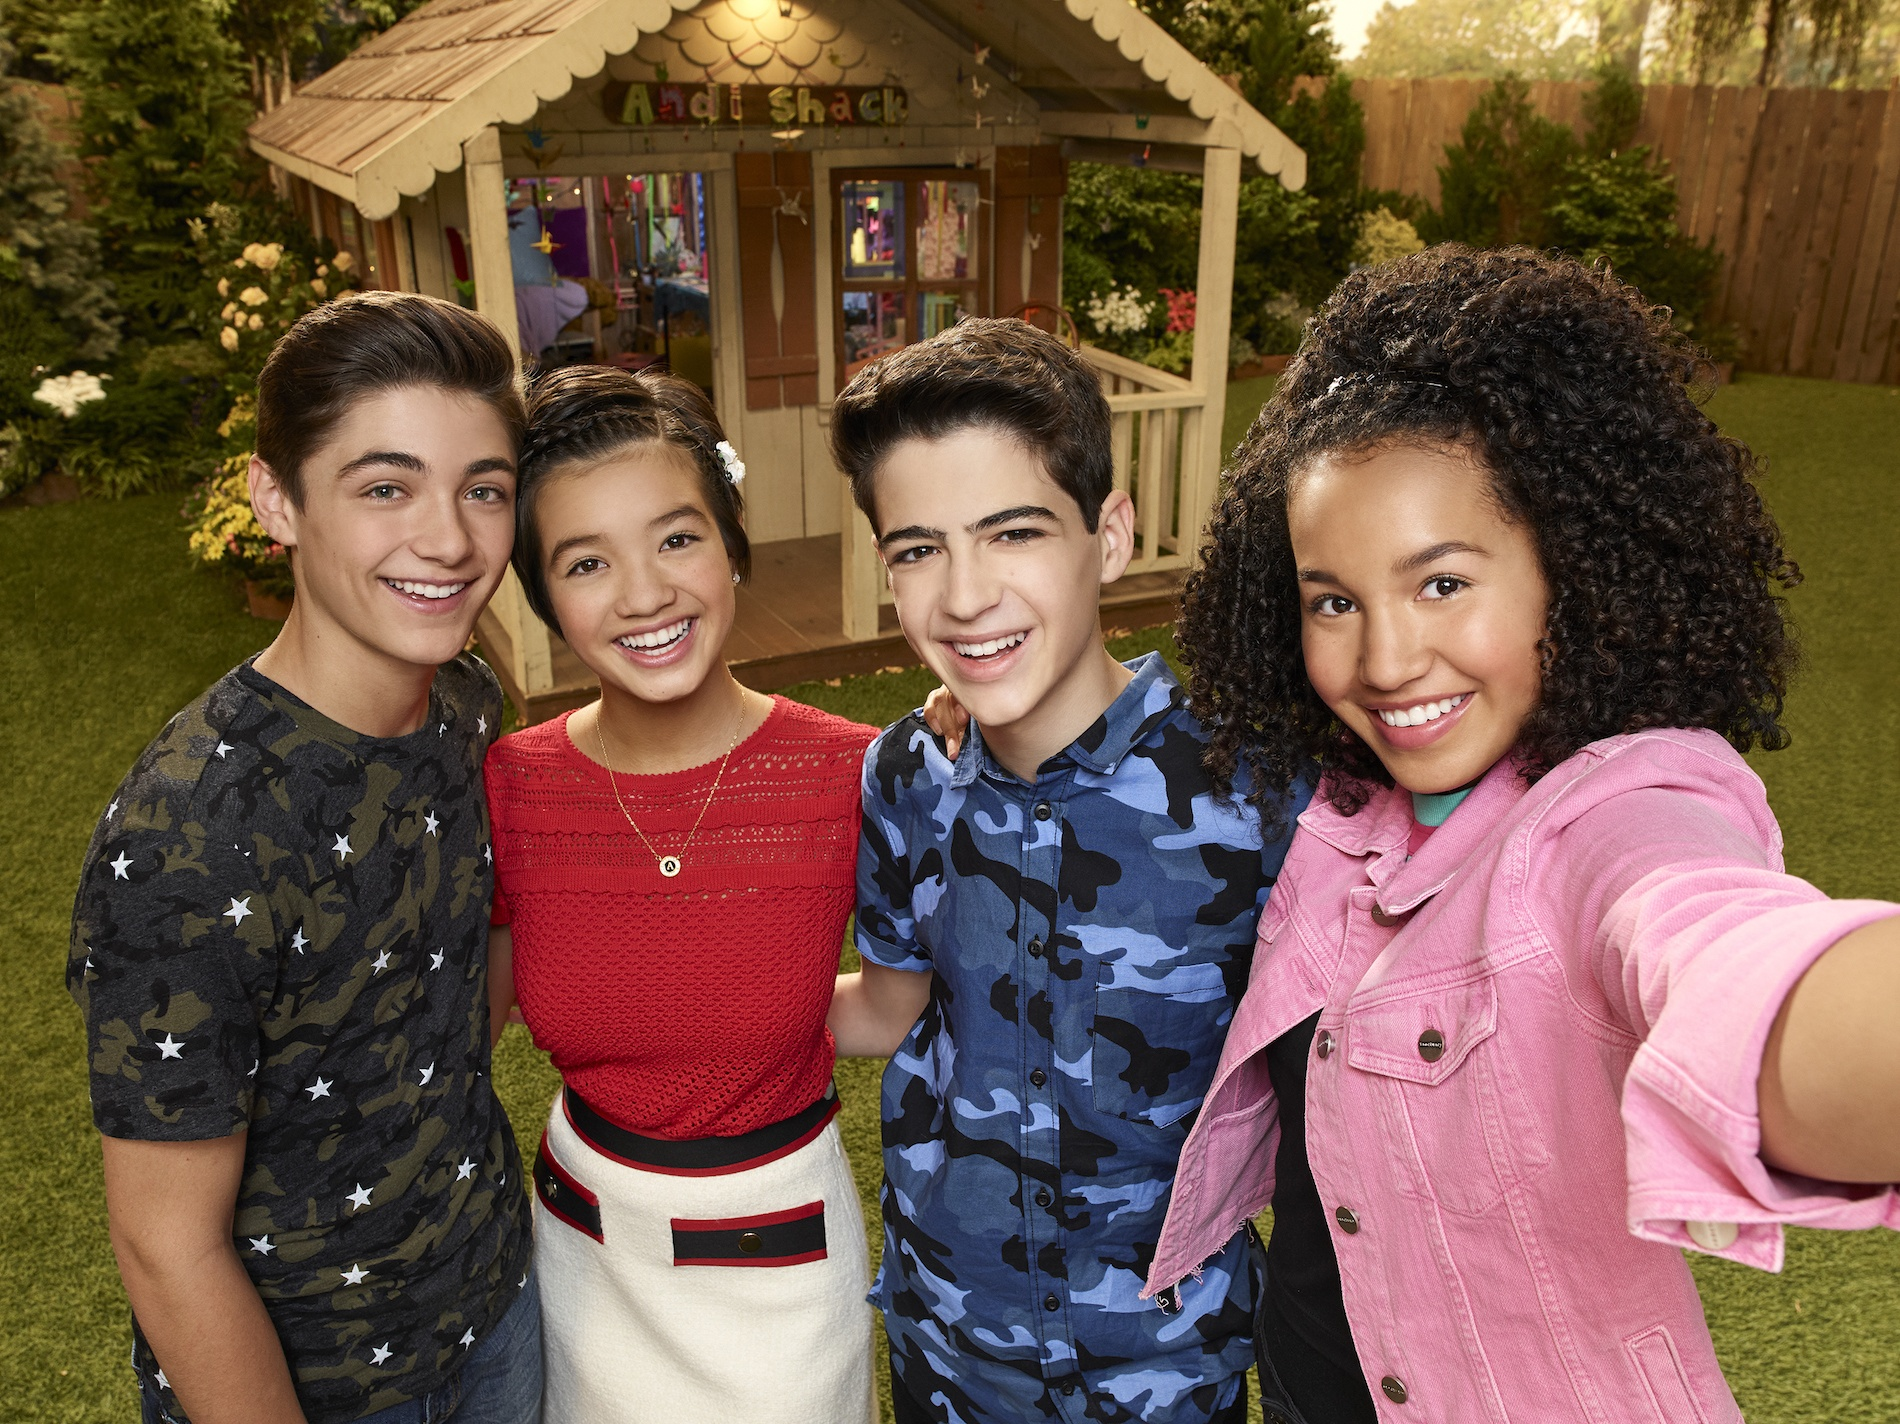 What It's Like to Audition for Disney Channel, According to 'Andi Mack' Creator Terri Minsky